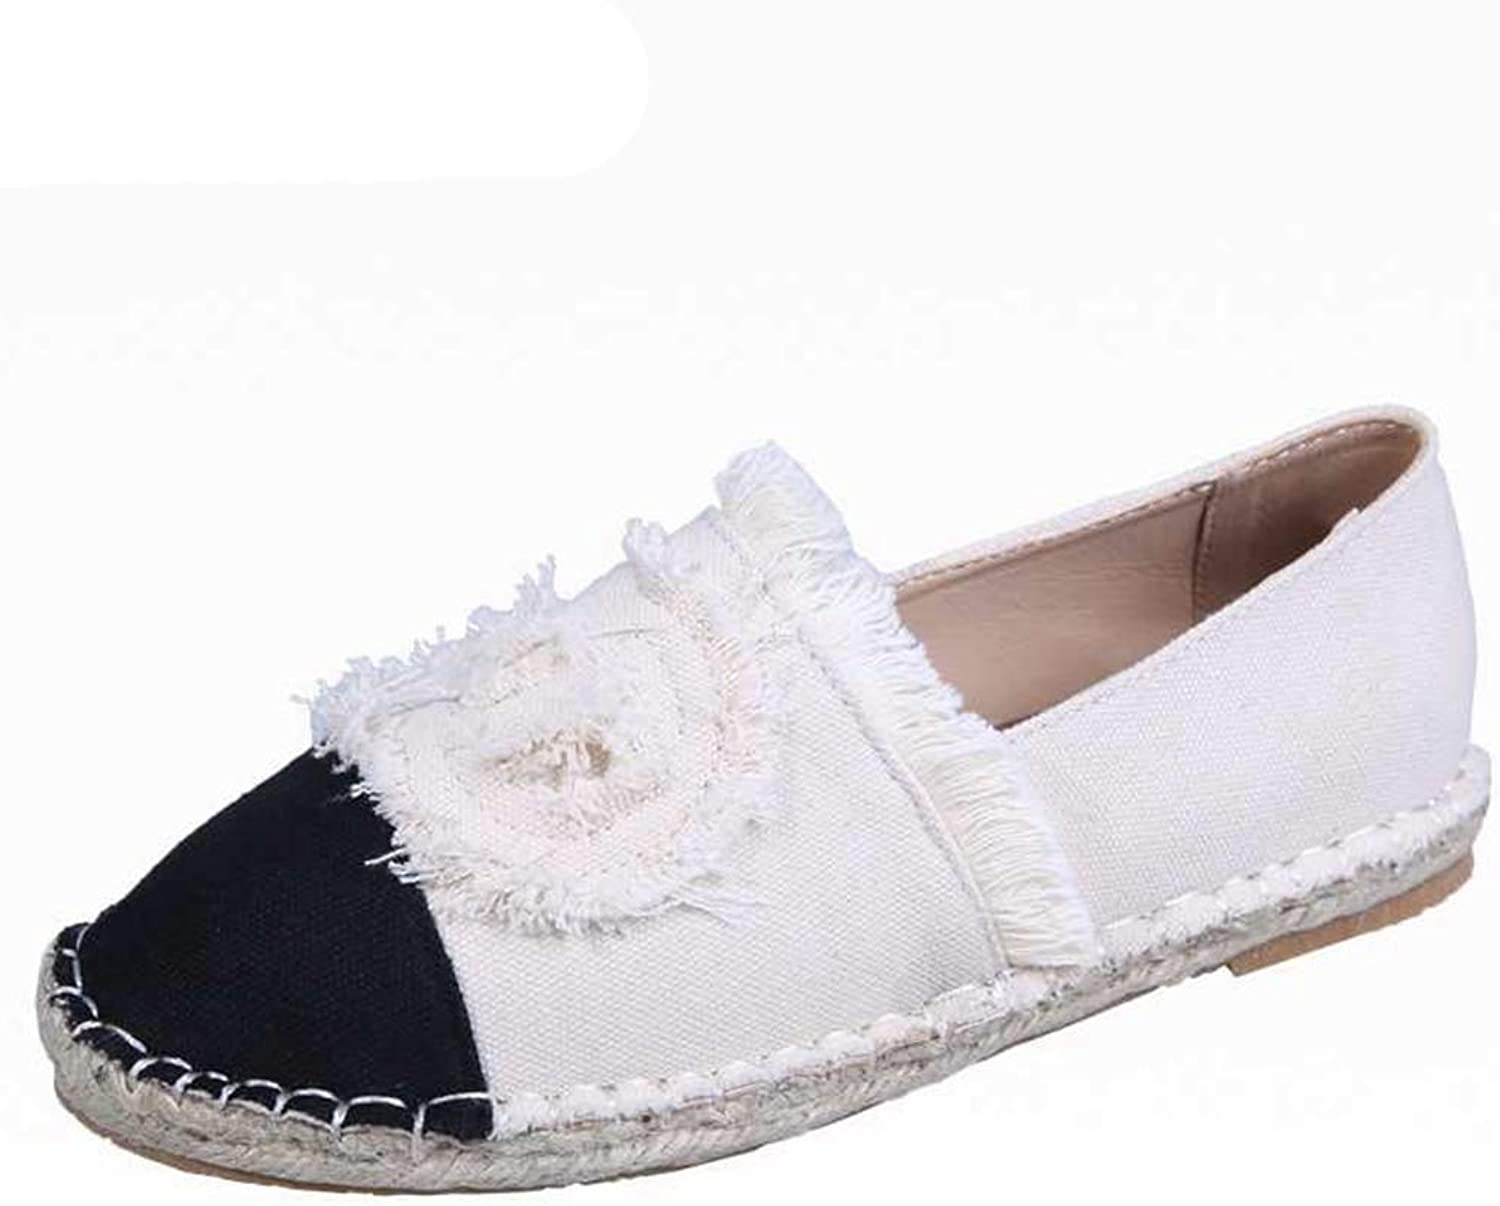 Fay Waters Women Loafers Canvas Embroidery Slip On Espadrilles Comfortable Round Toe Casual Flat shoes